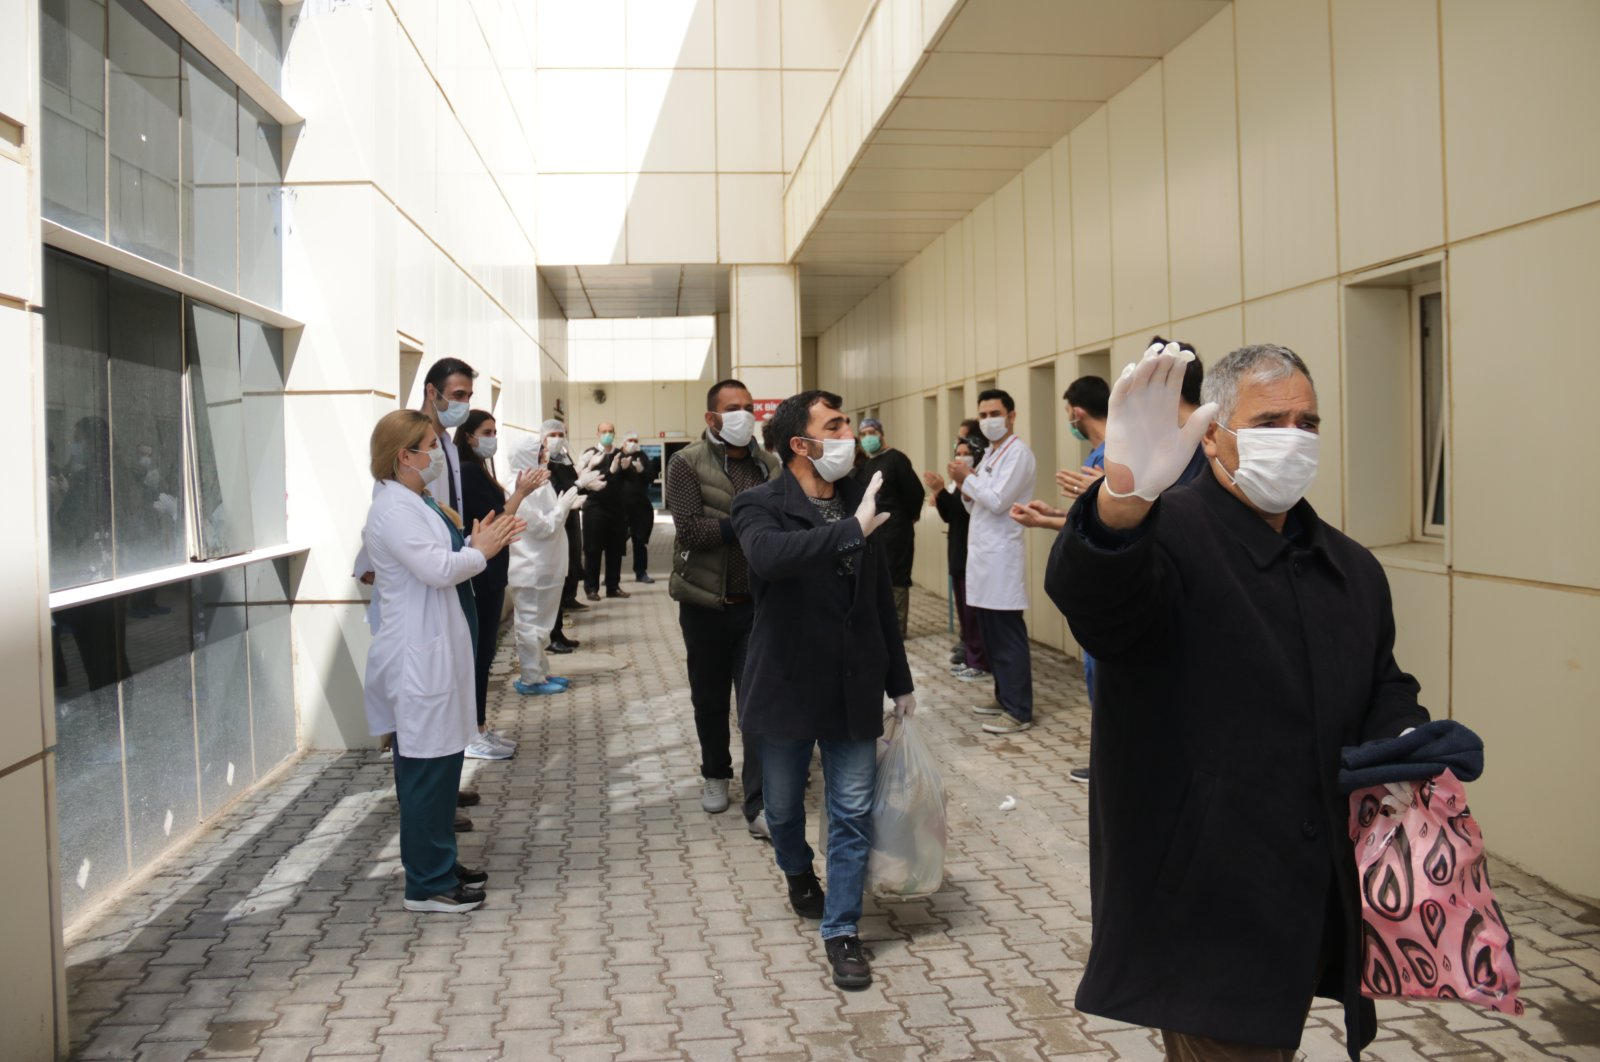 Hospital staff applause discharged COVID-19 patients in the Erciş district in Van, eastern Turkey, April 27, 2020. (AA Photo)